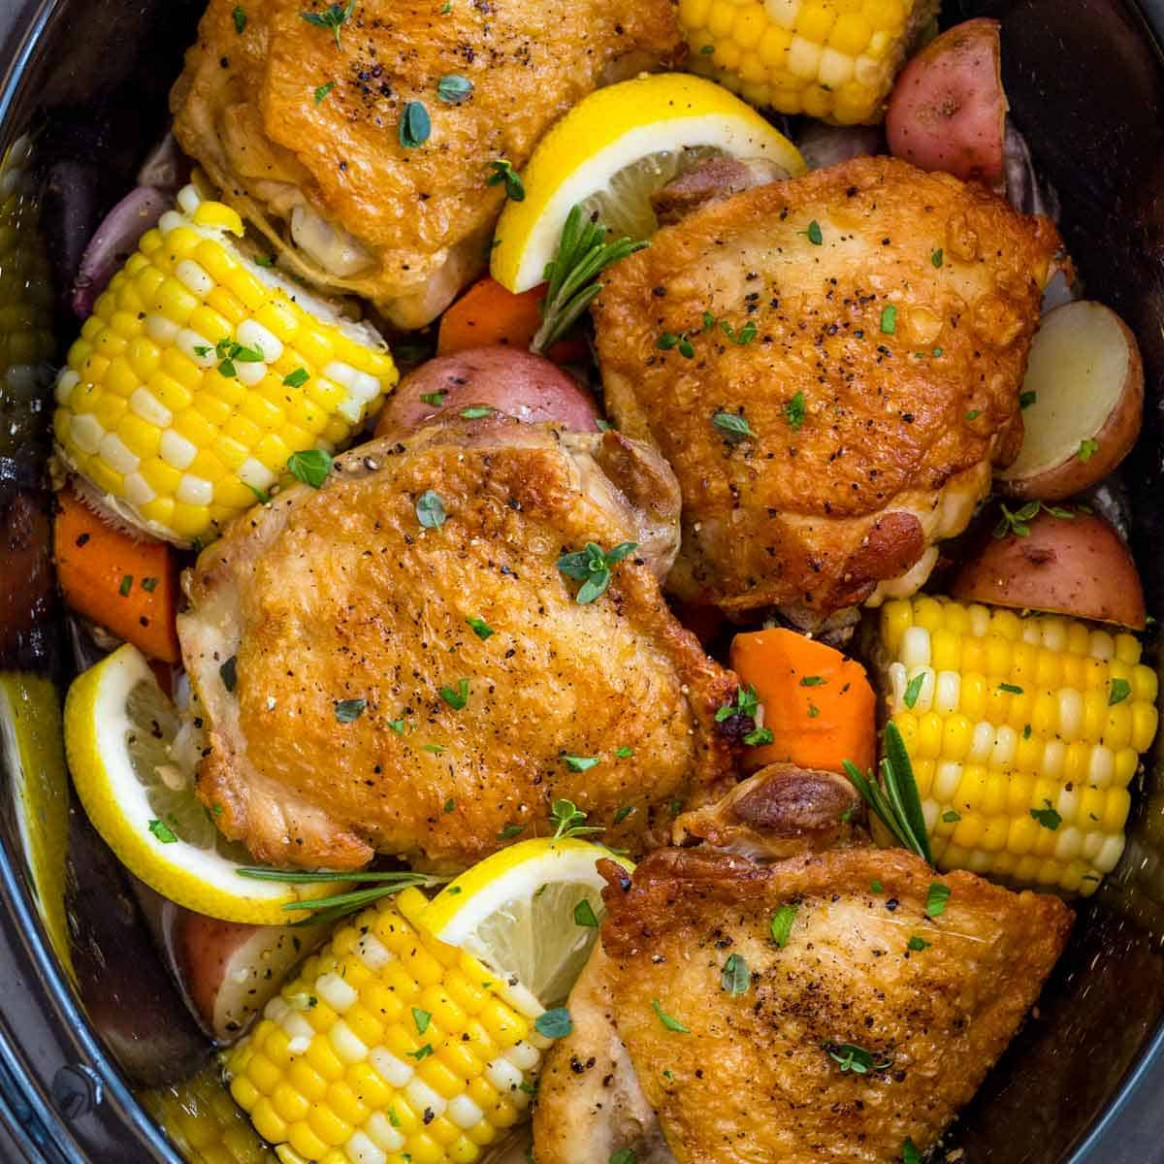 Slow Cooker Chicken Thighs - Recipes Using Chicken Thighs